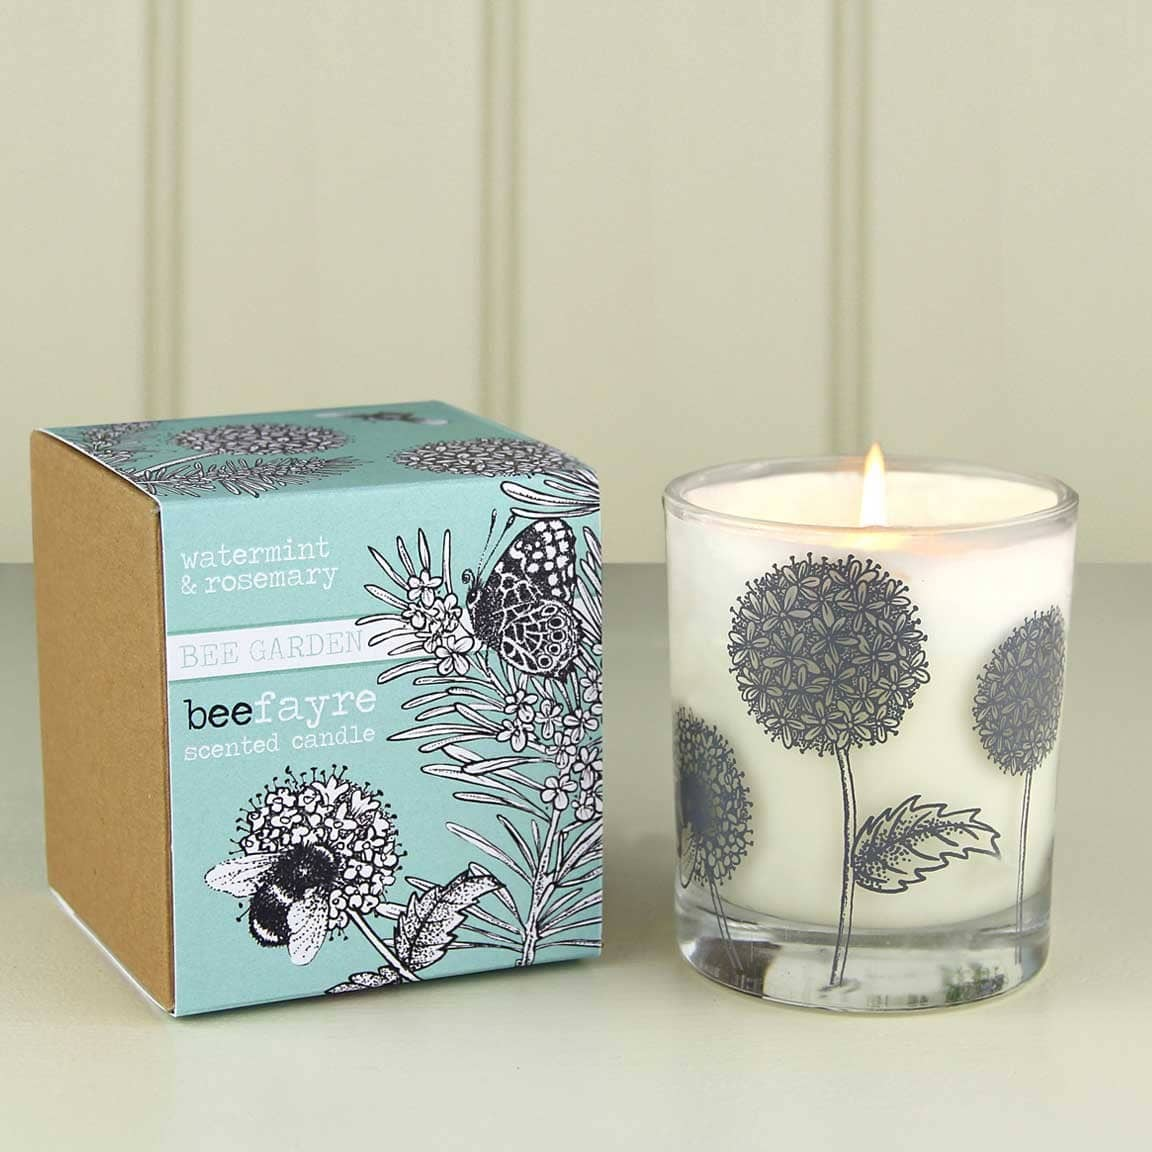 watermint-large-candle_1-1.jpg